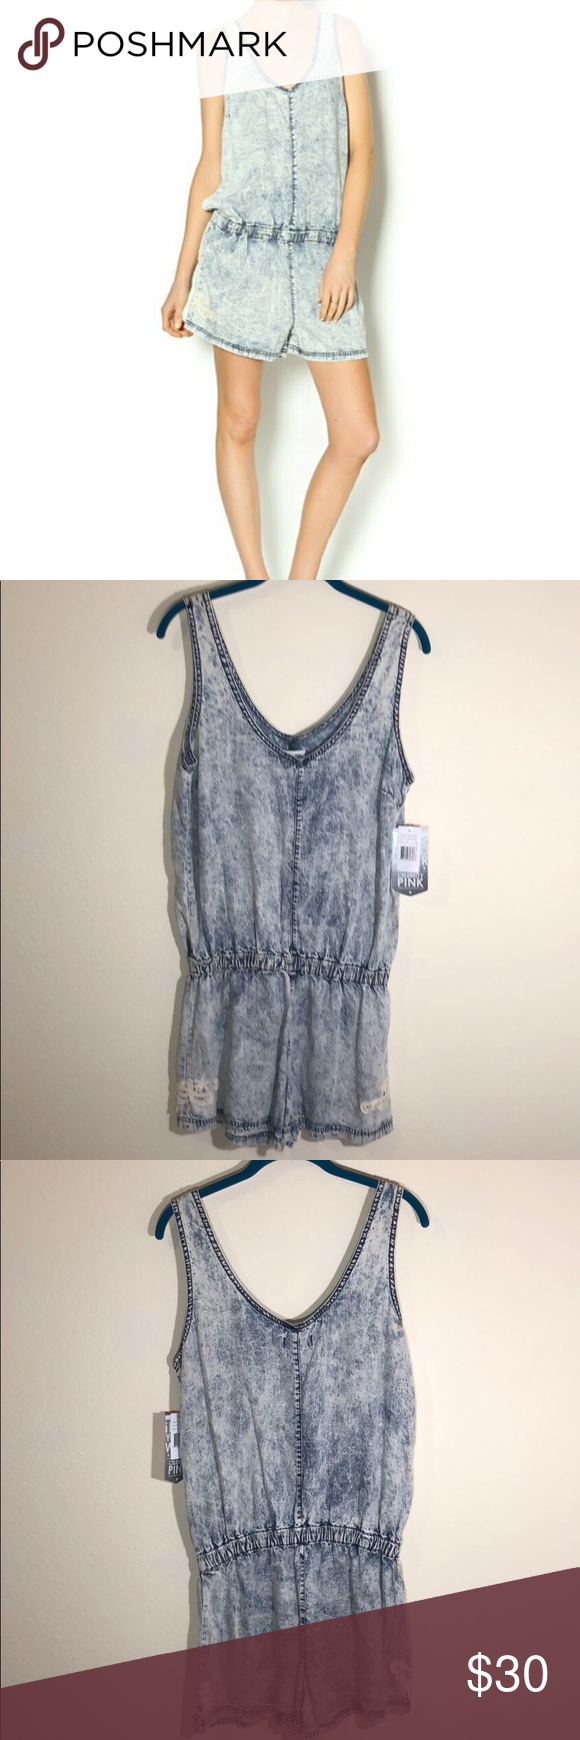 bc7bb23b162 NWT Celebrity Pink Acid Wash Denim Romper NWT Celebrity Pink Acid Wash  Denim Romper Size M Perfect for warmers days and festivals! Acid wash denim  with lace ...